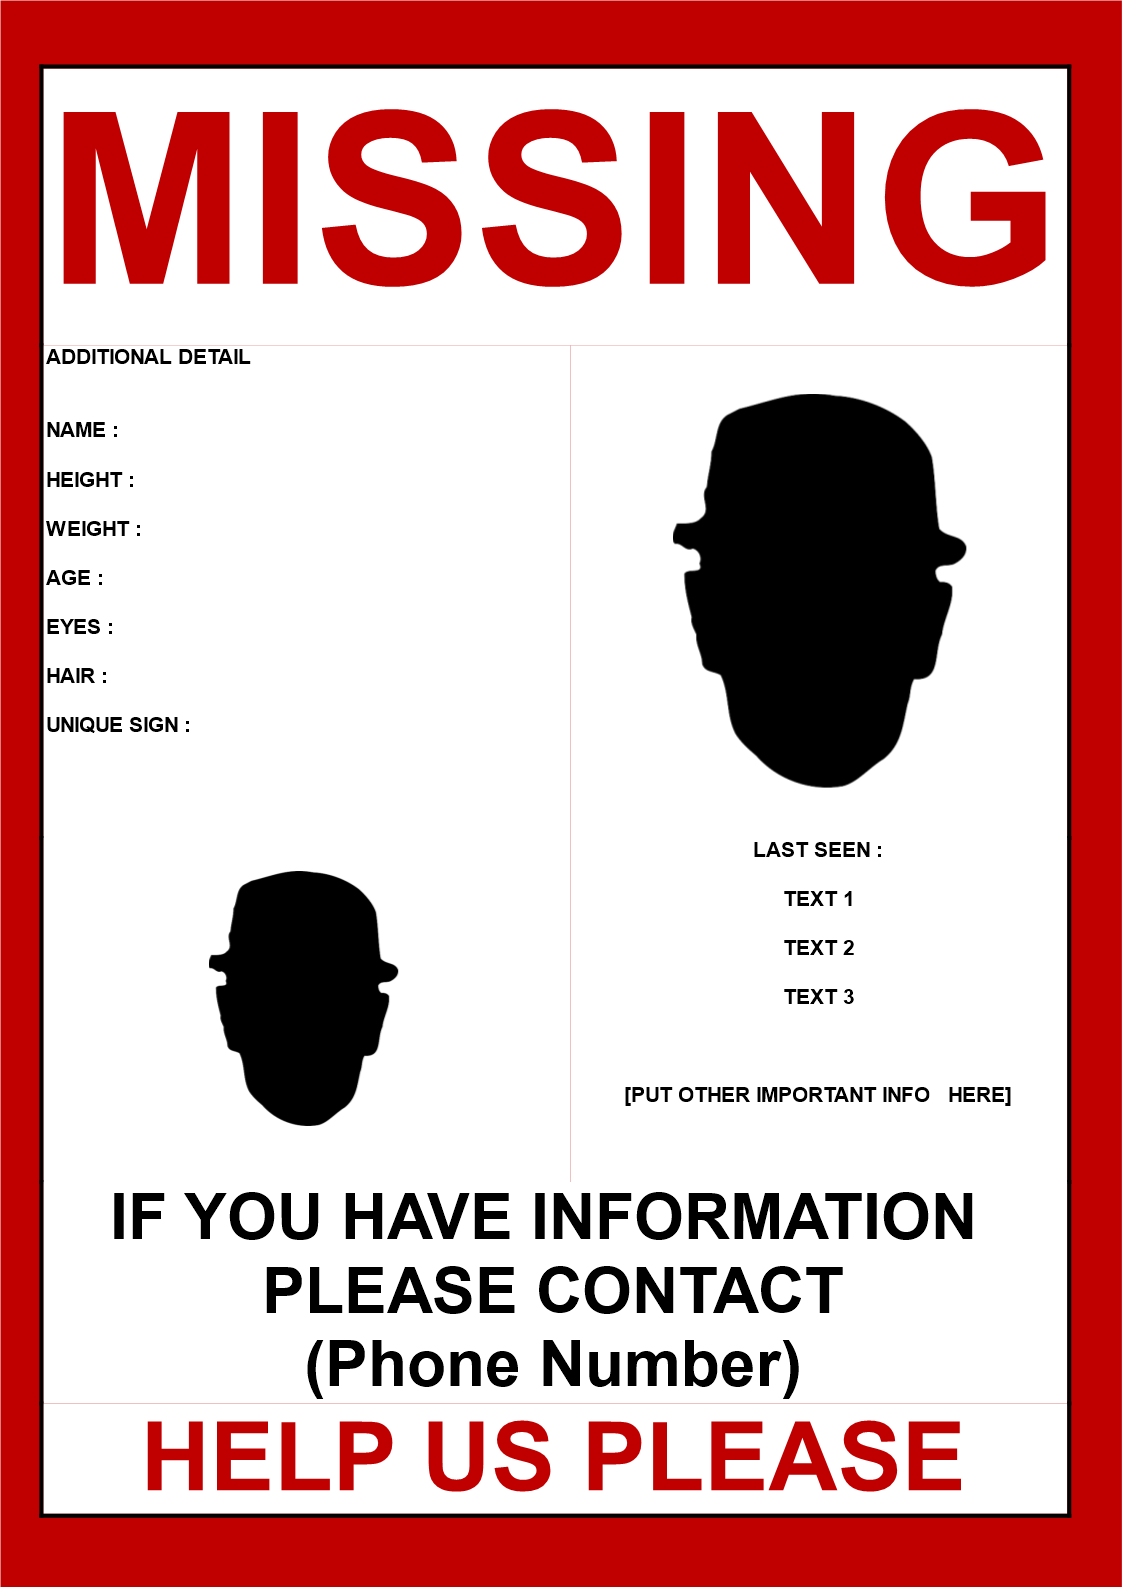 Missing Person Poster Template 2 Images   Download This Missing Person  Poster 2 Pictures Poster Template  Missing Person Flyer